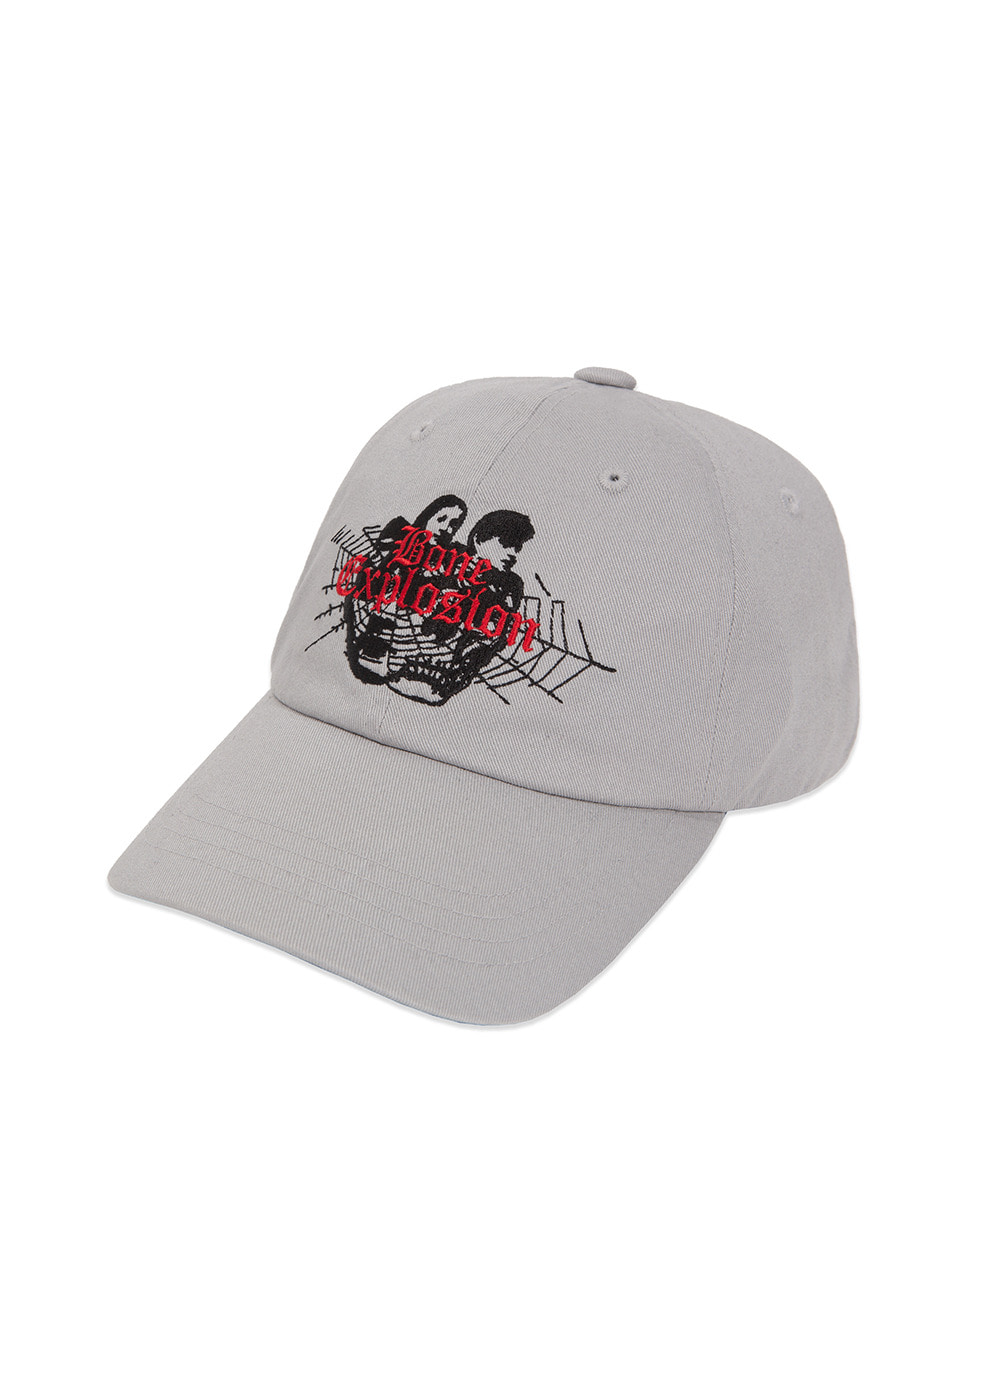 LMC BONE EXPLOSION 6 PANEL CAP gray